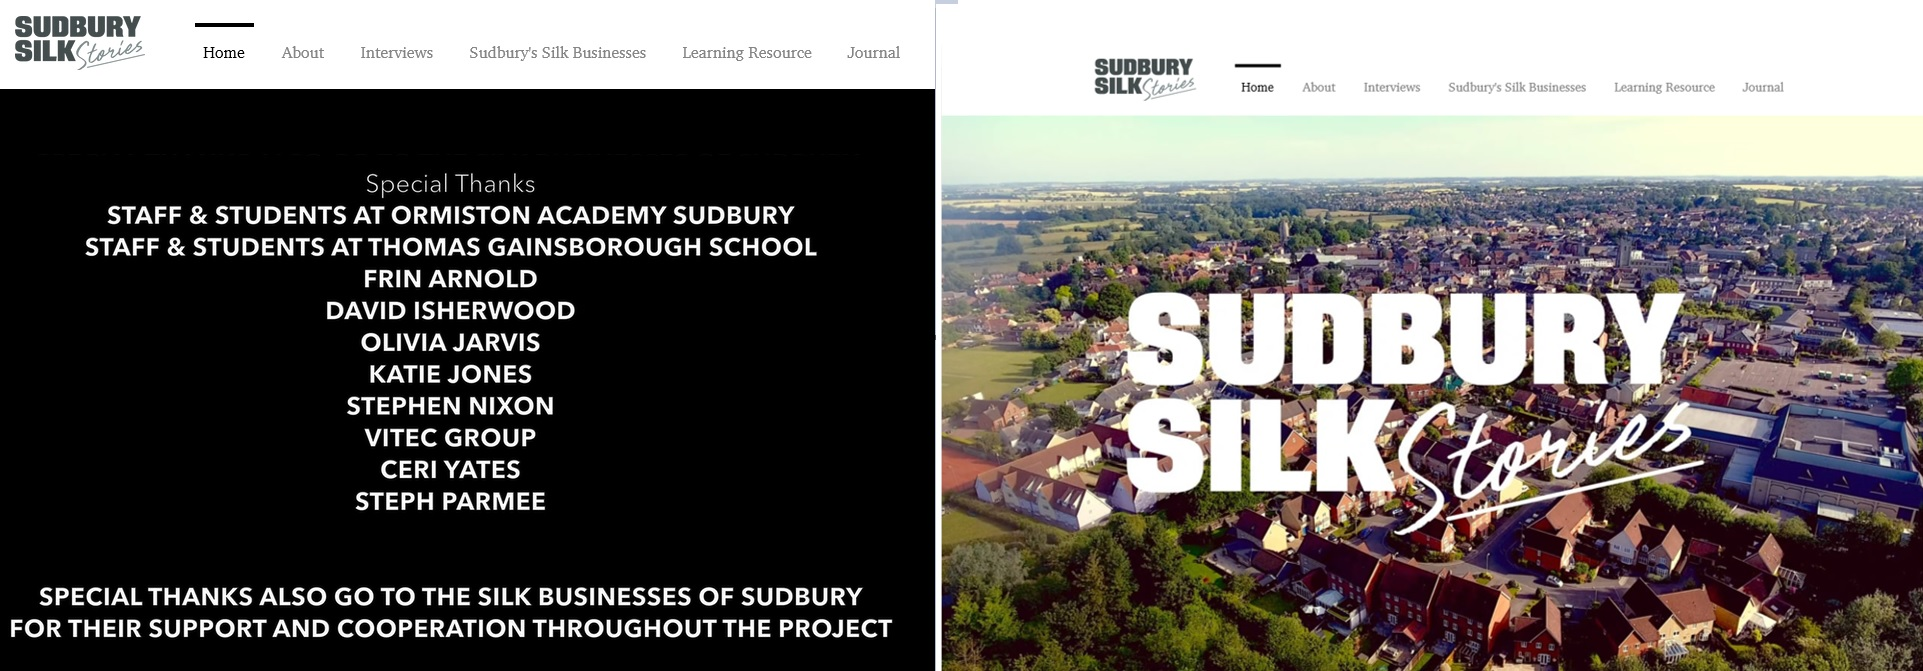 017 Sudbury Silk Stories